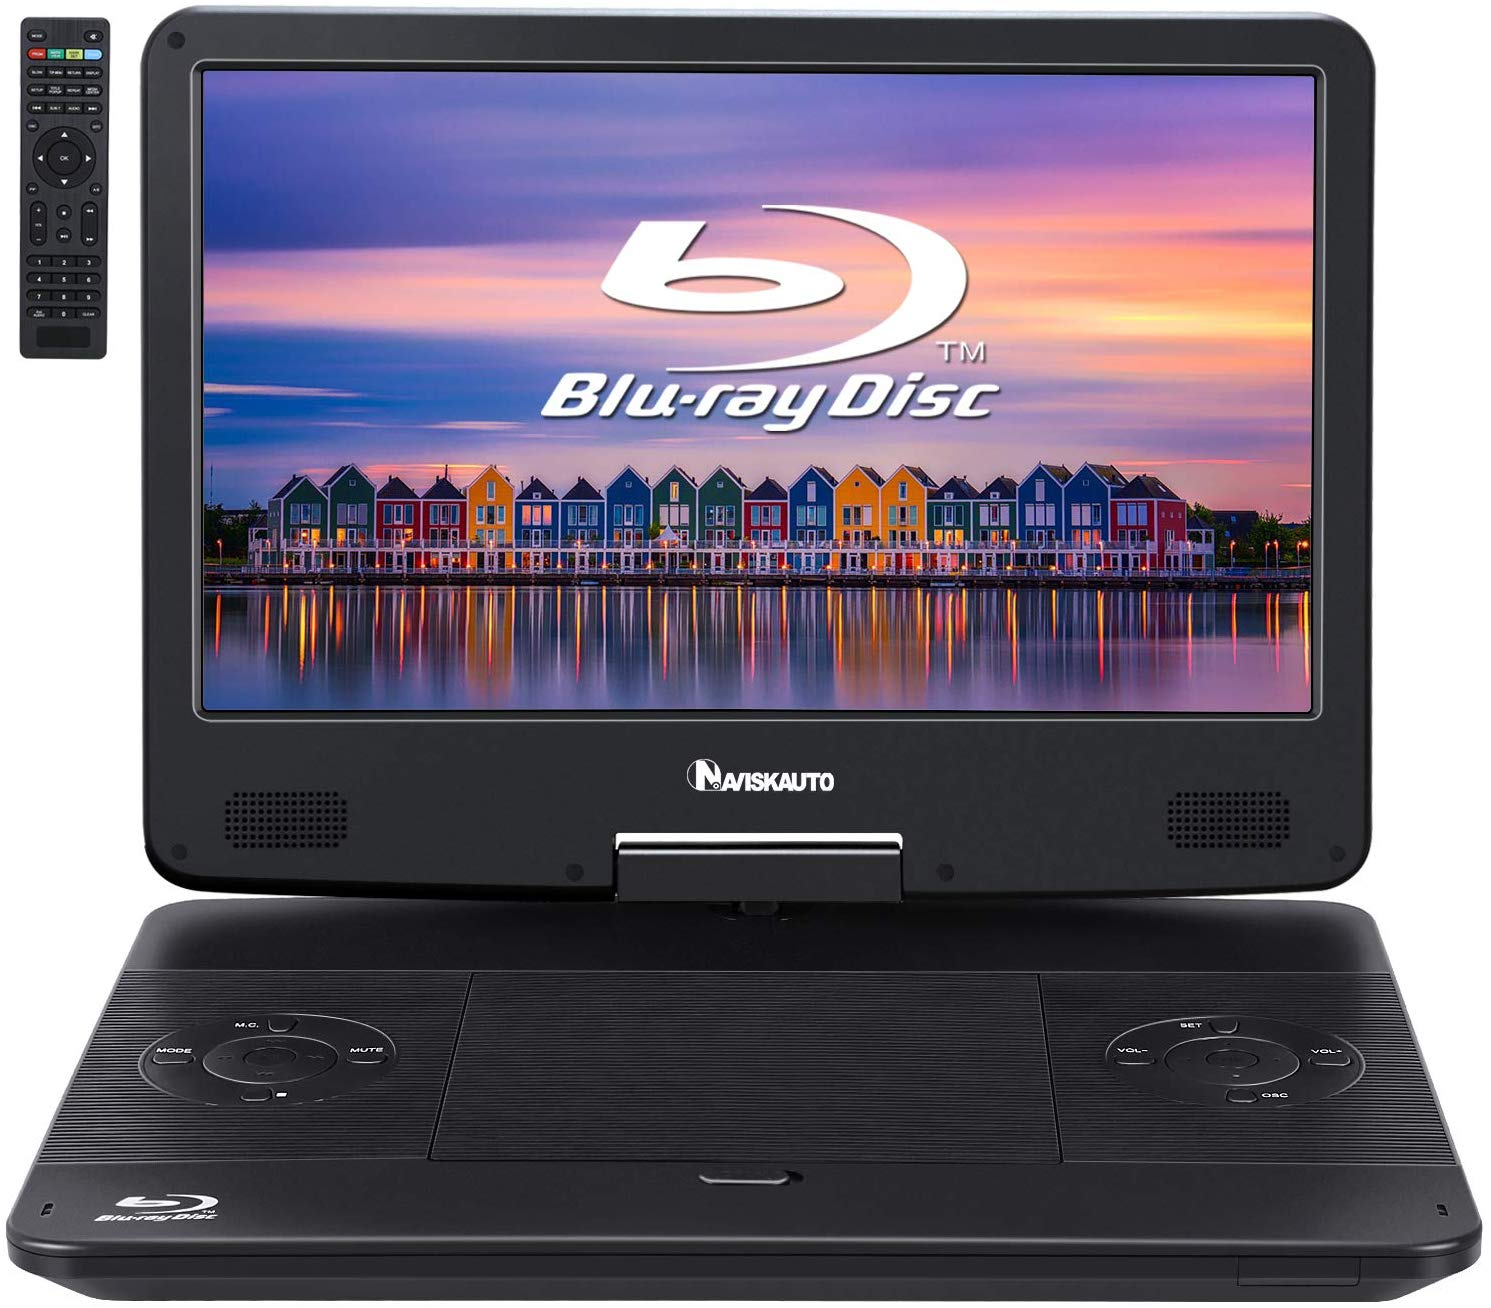 "NAVISKAUTO 14"" Portable Blu-Ray DVD Player"